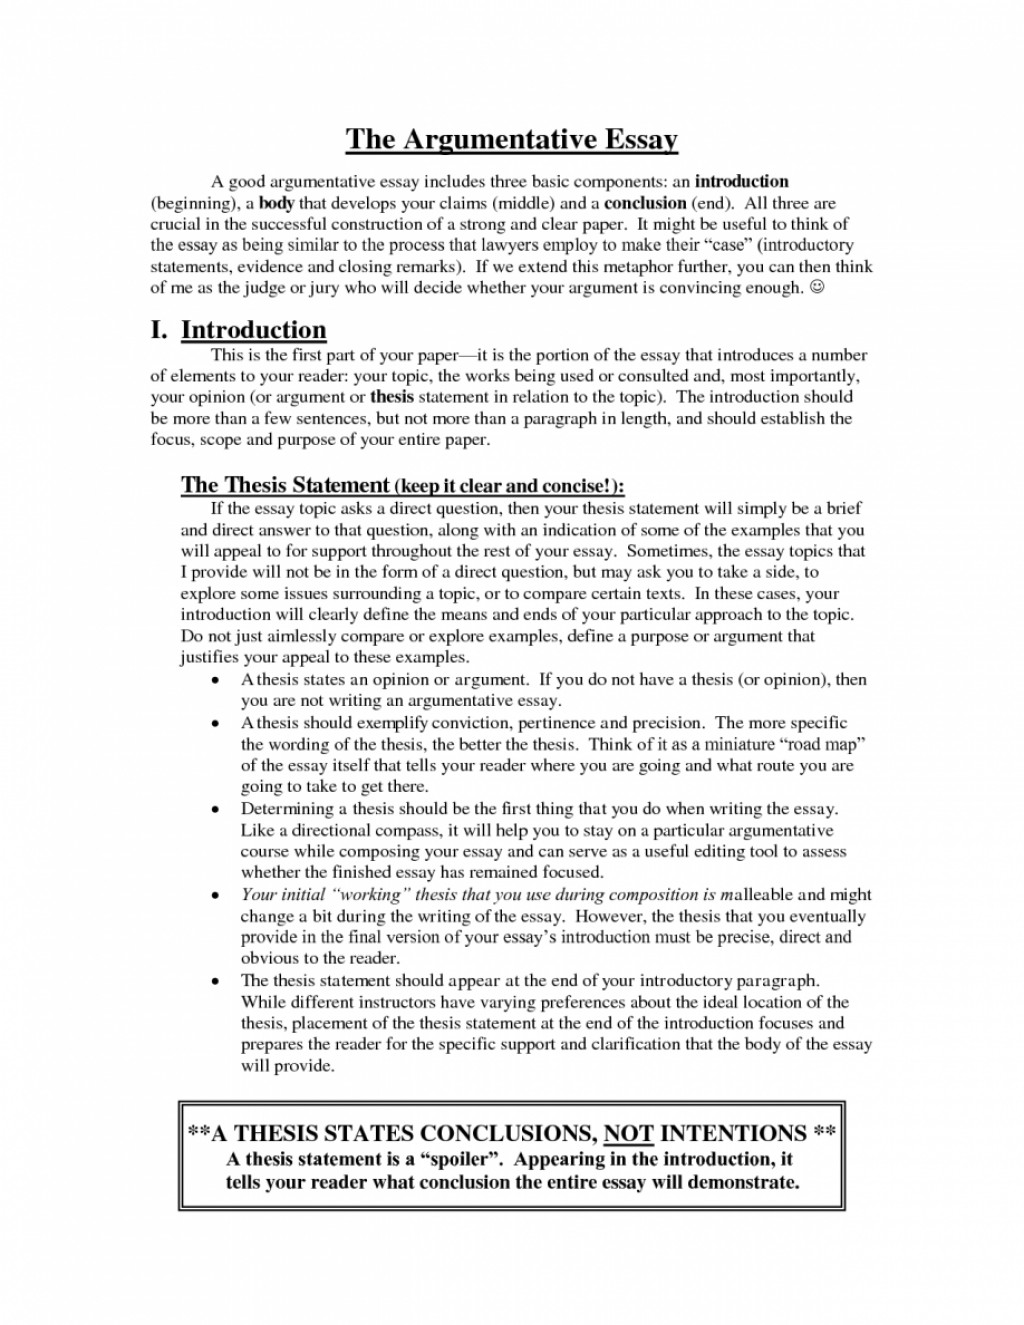 005 Argumentative Essay Introduction Examples Example Help Writing An College Good Persuasive Paragraph Image Ga Samples Personal Awesome Middle School Format Large